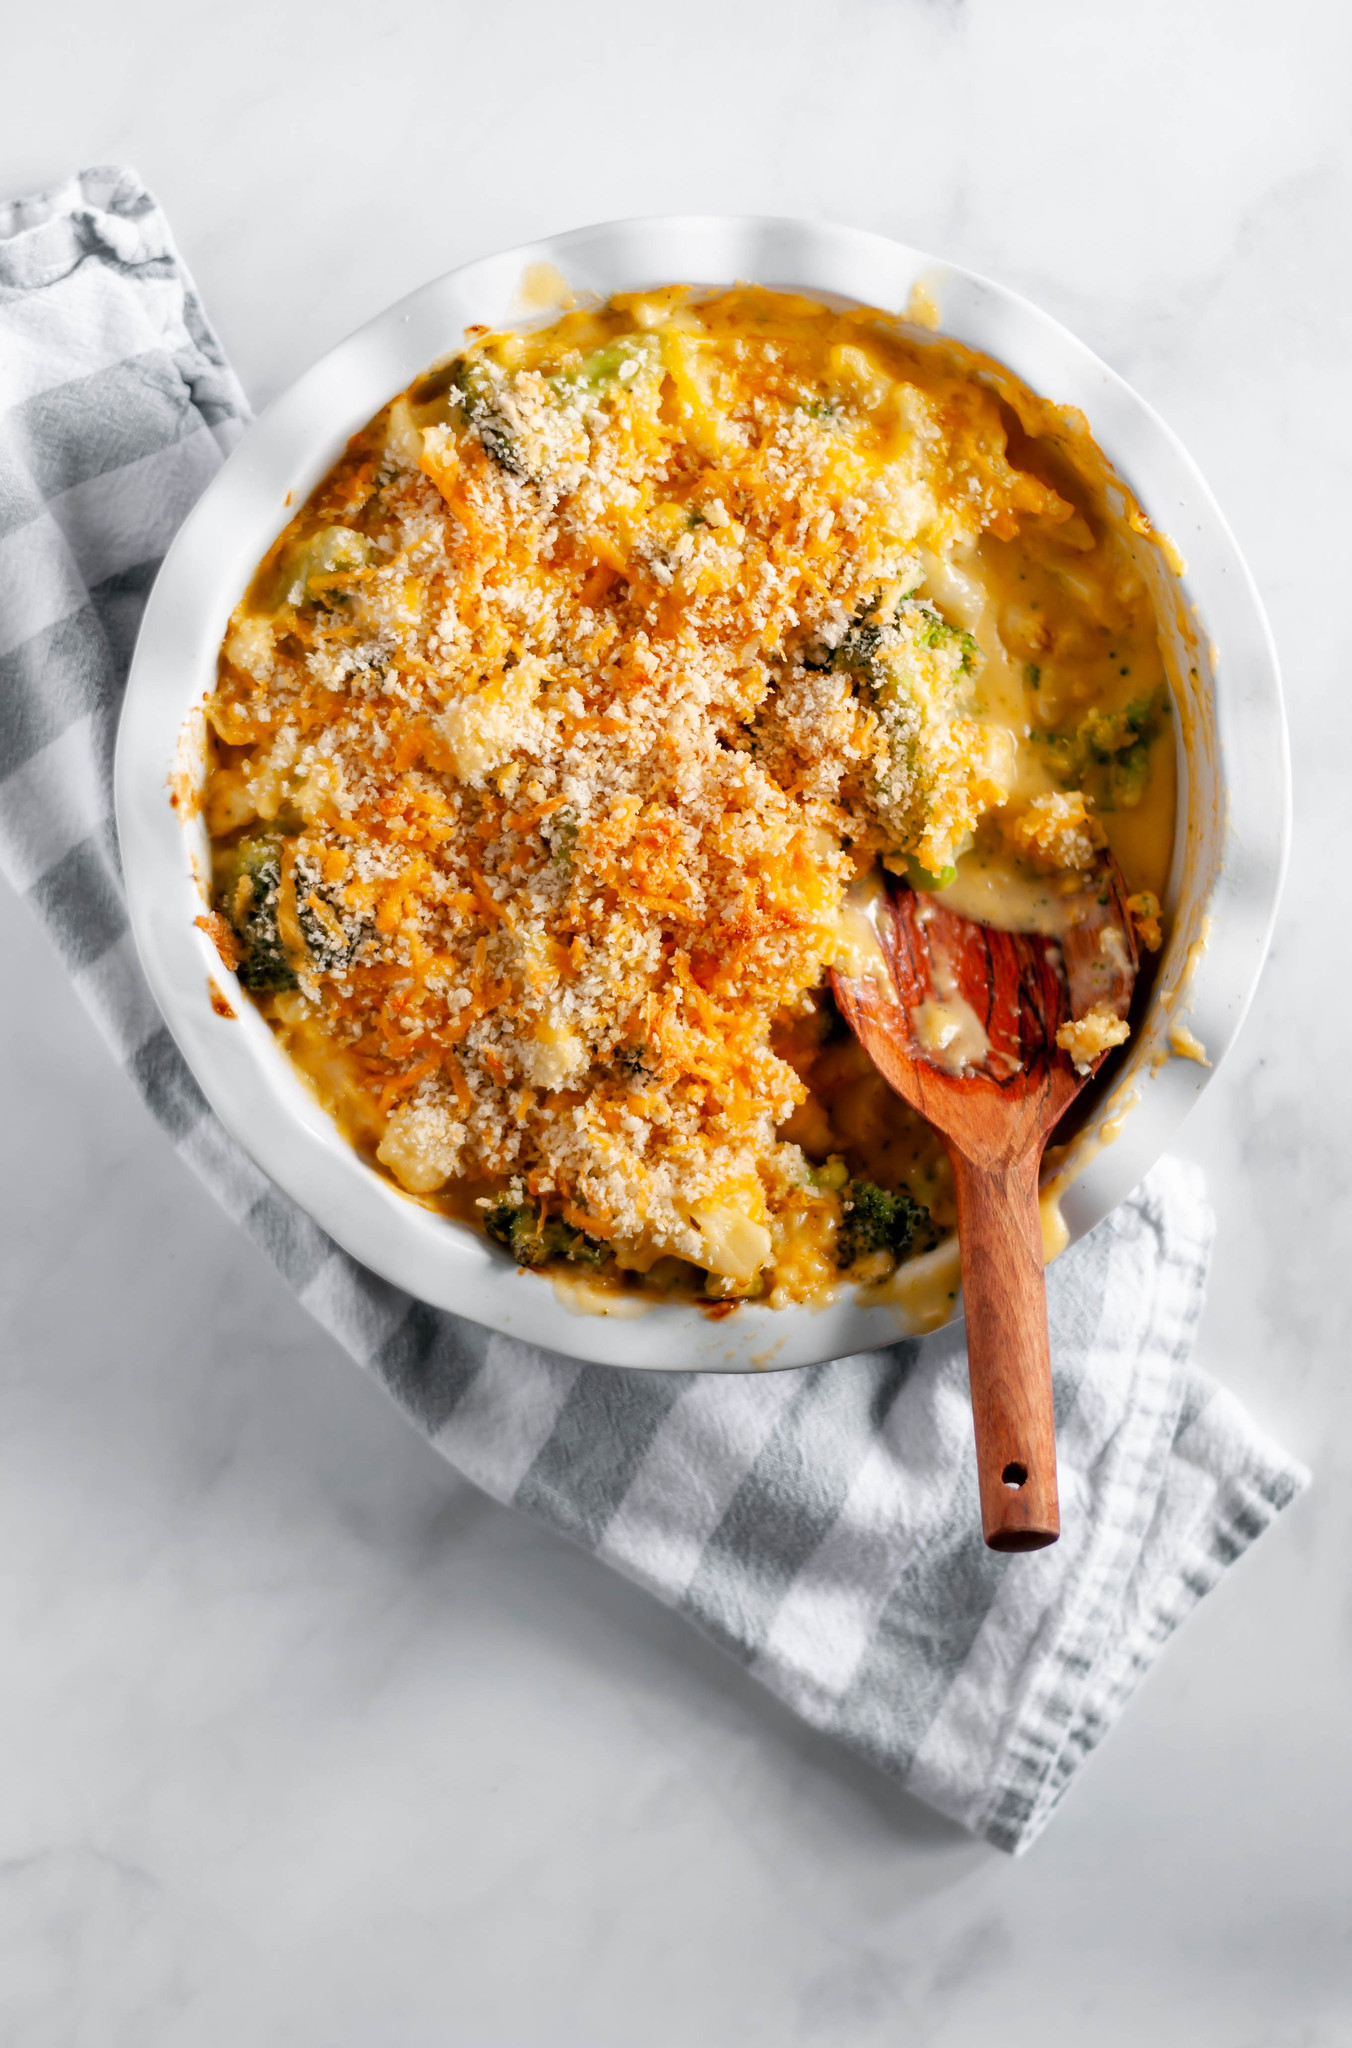 Broccoli and Cauliflower Au Gratin is a favorite side dish for every holiday. Rich, homemade cheese sauce, broccoli and cauliflower with a crispy panko topping.